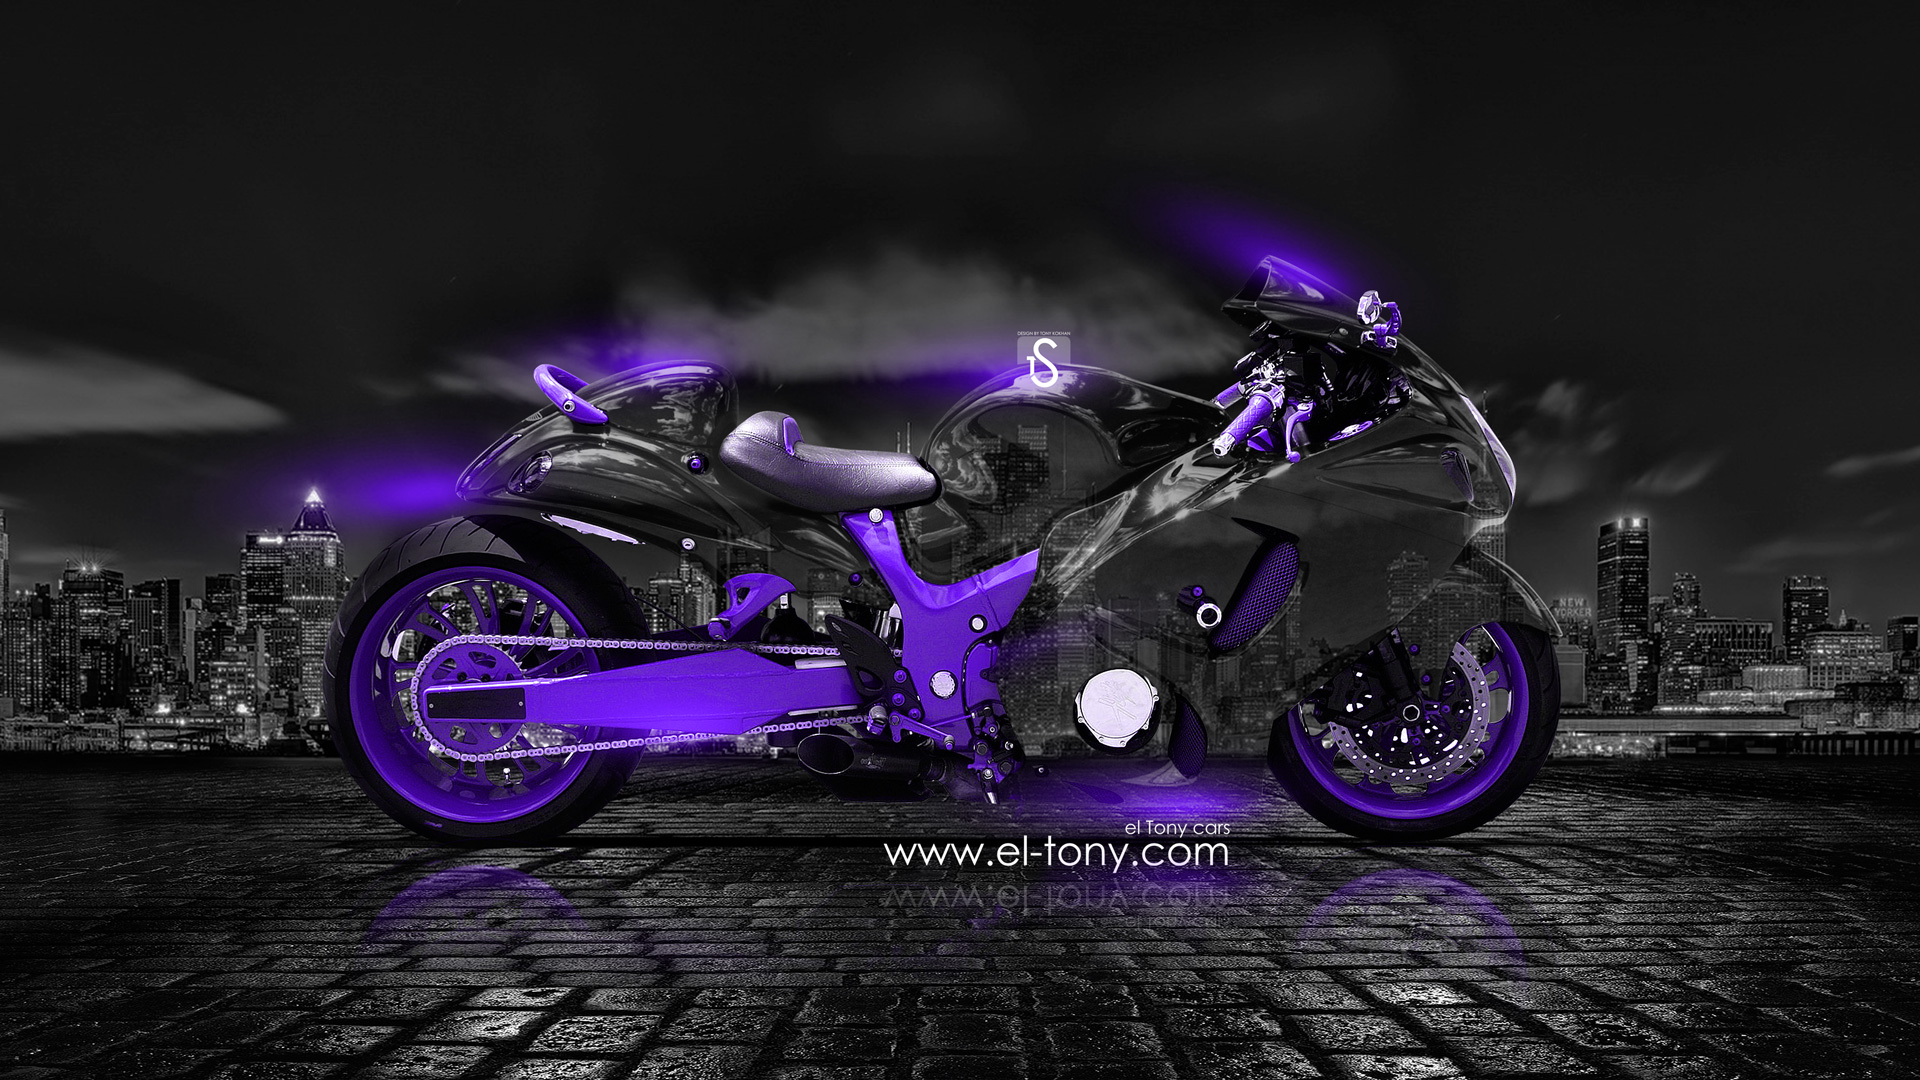 Captivating Moto Suzuki Hayabusa Crystal City Car 2014 Violet